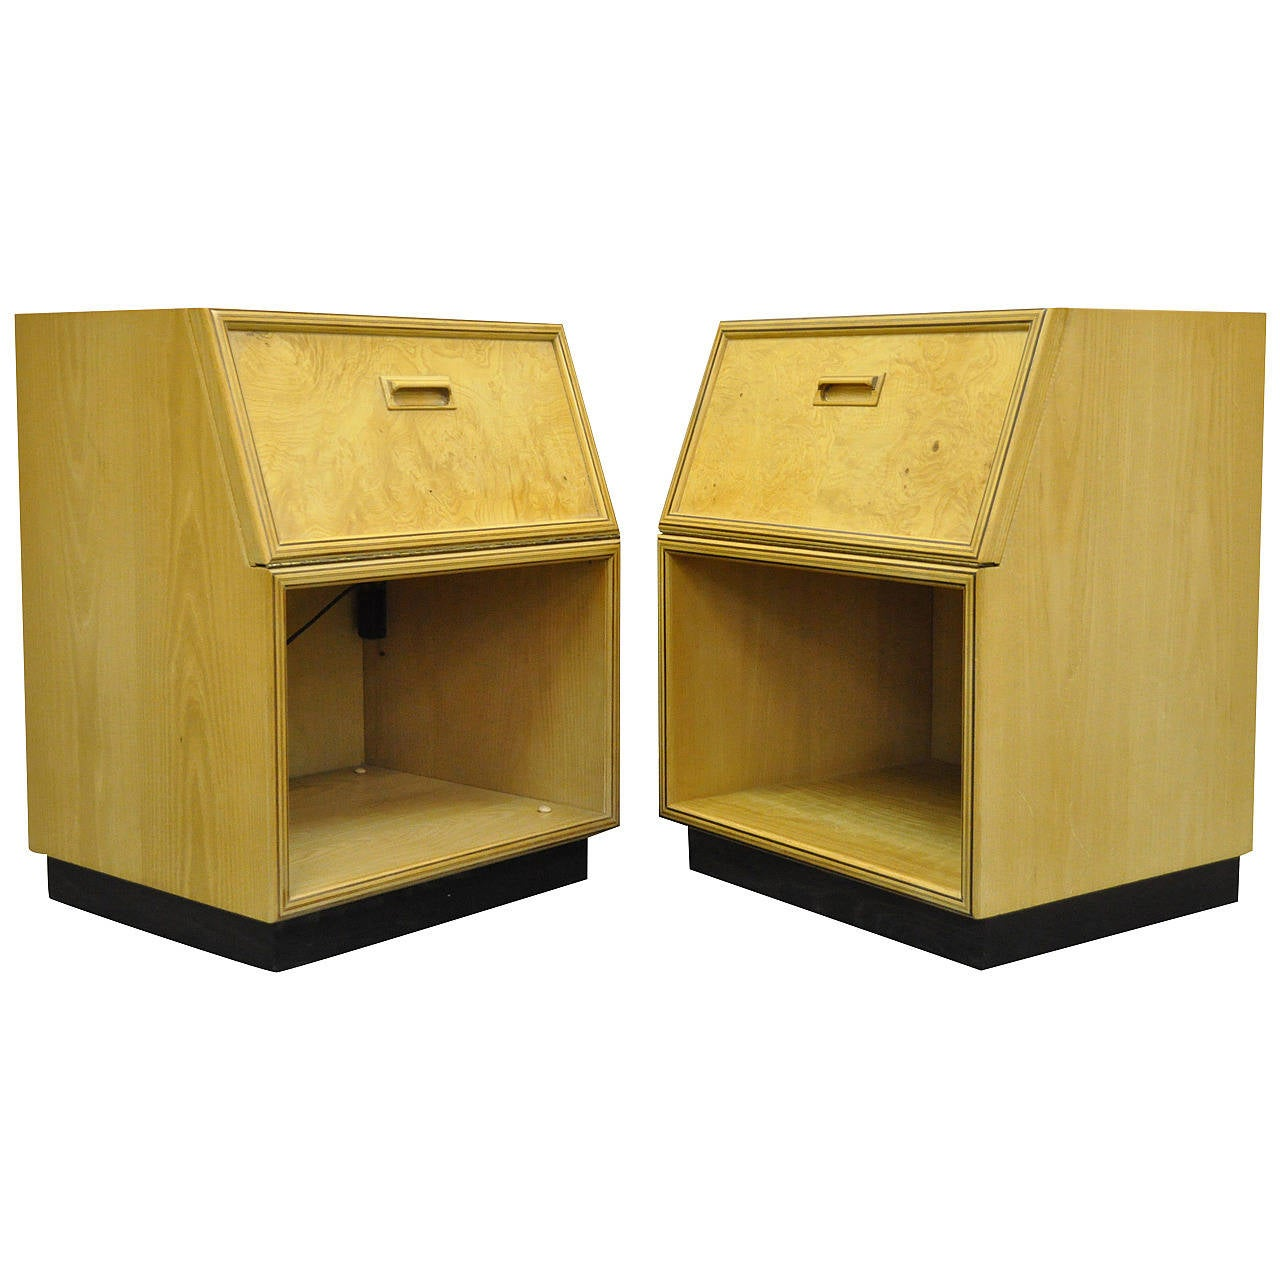 Pair of Henredon Scene Two Nightstands or Bedside Tables after Milo Baughman